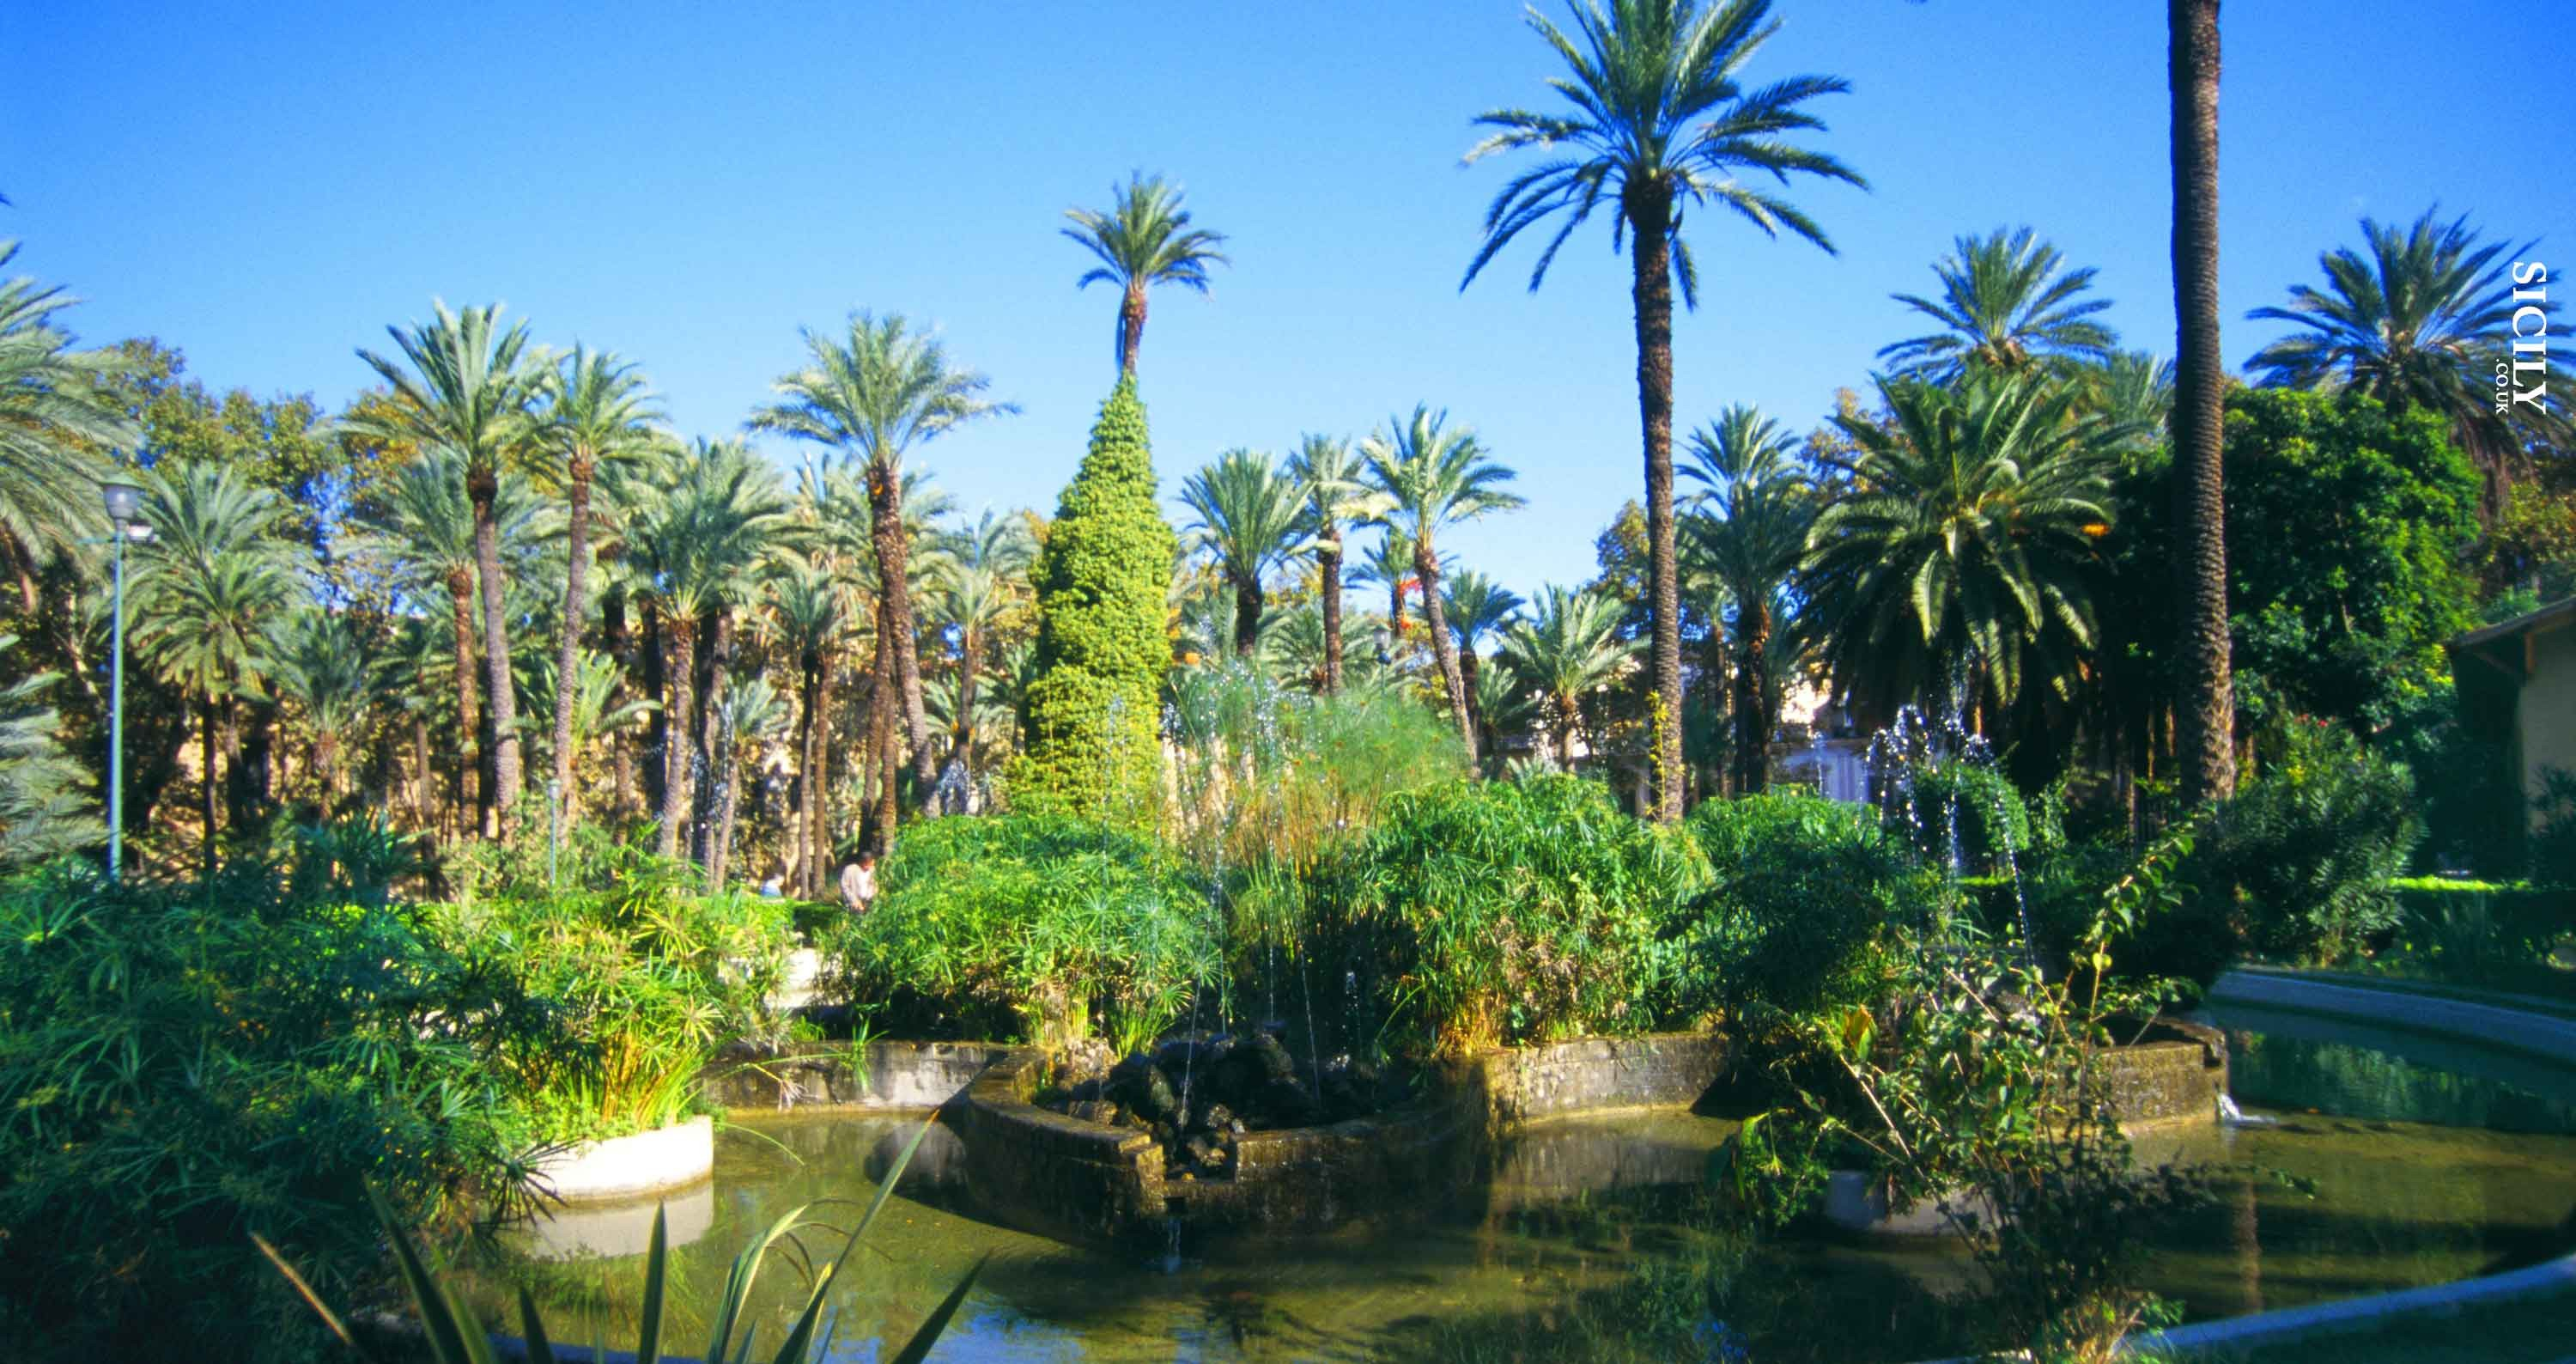 Botanical Garden - Palermo City